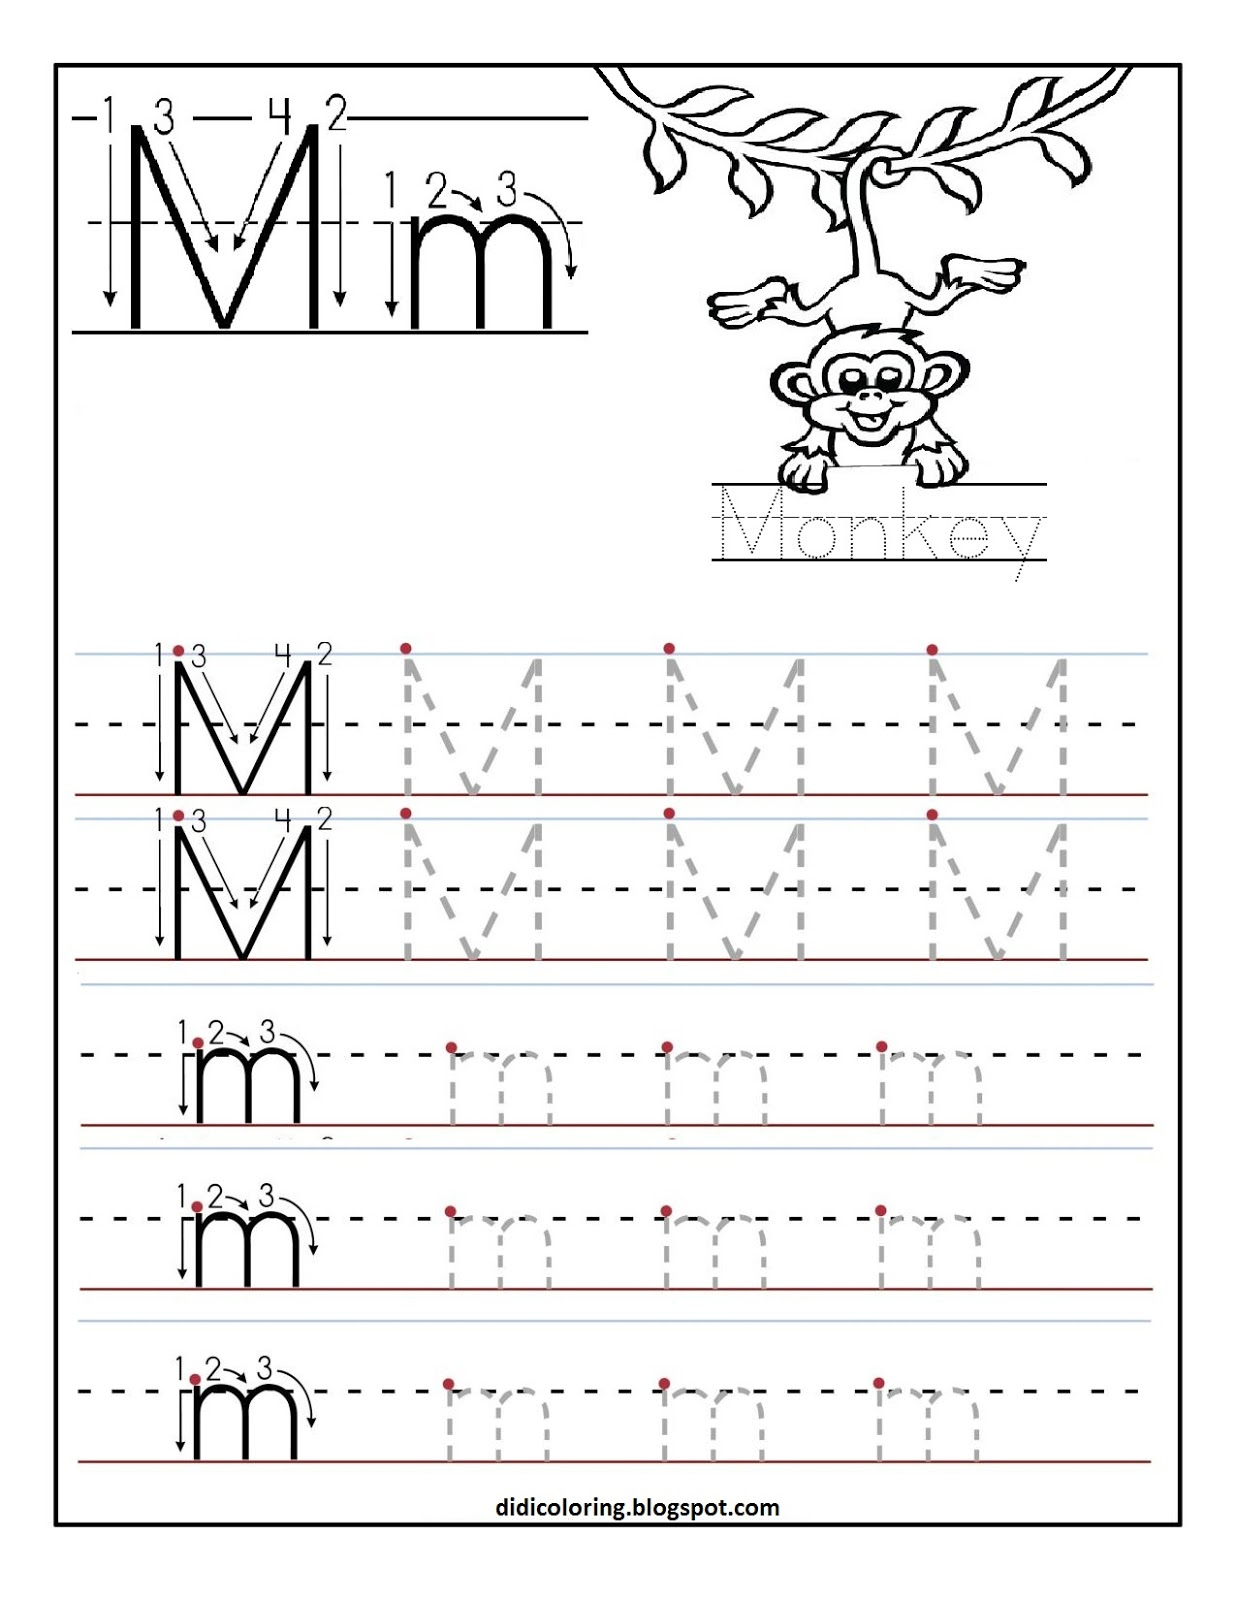 Enjoy Writing Letter Ally Good For Child To Learnee Printable Letter M